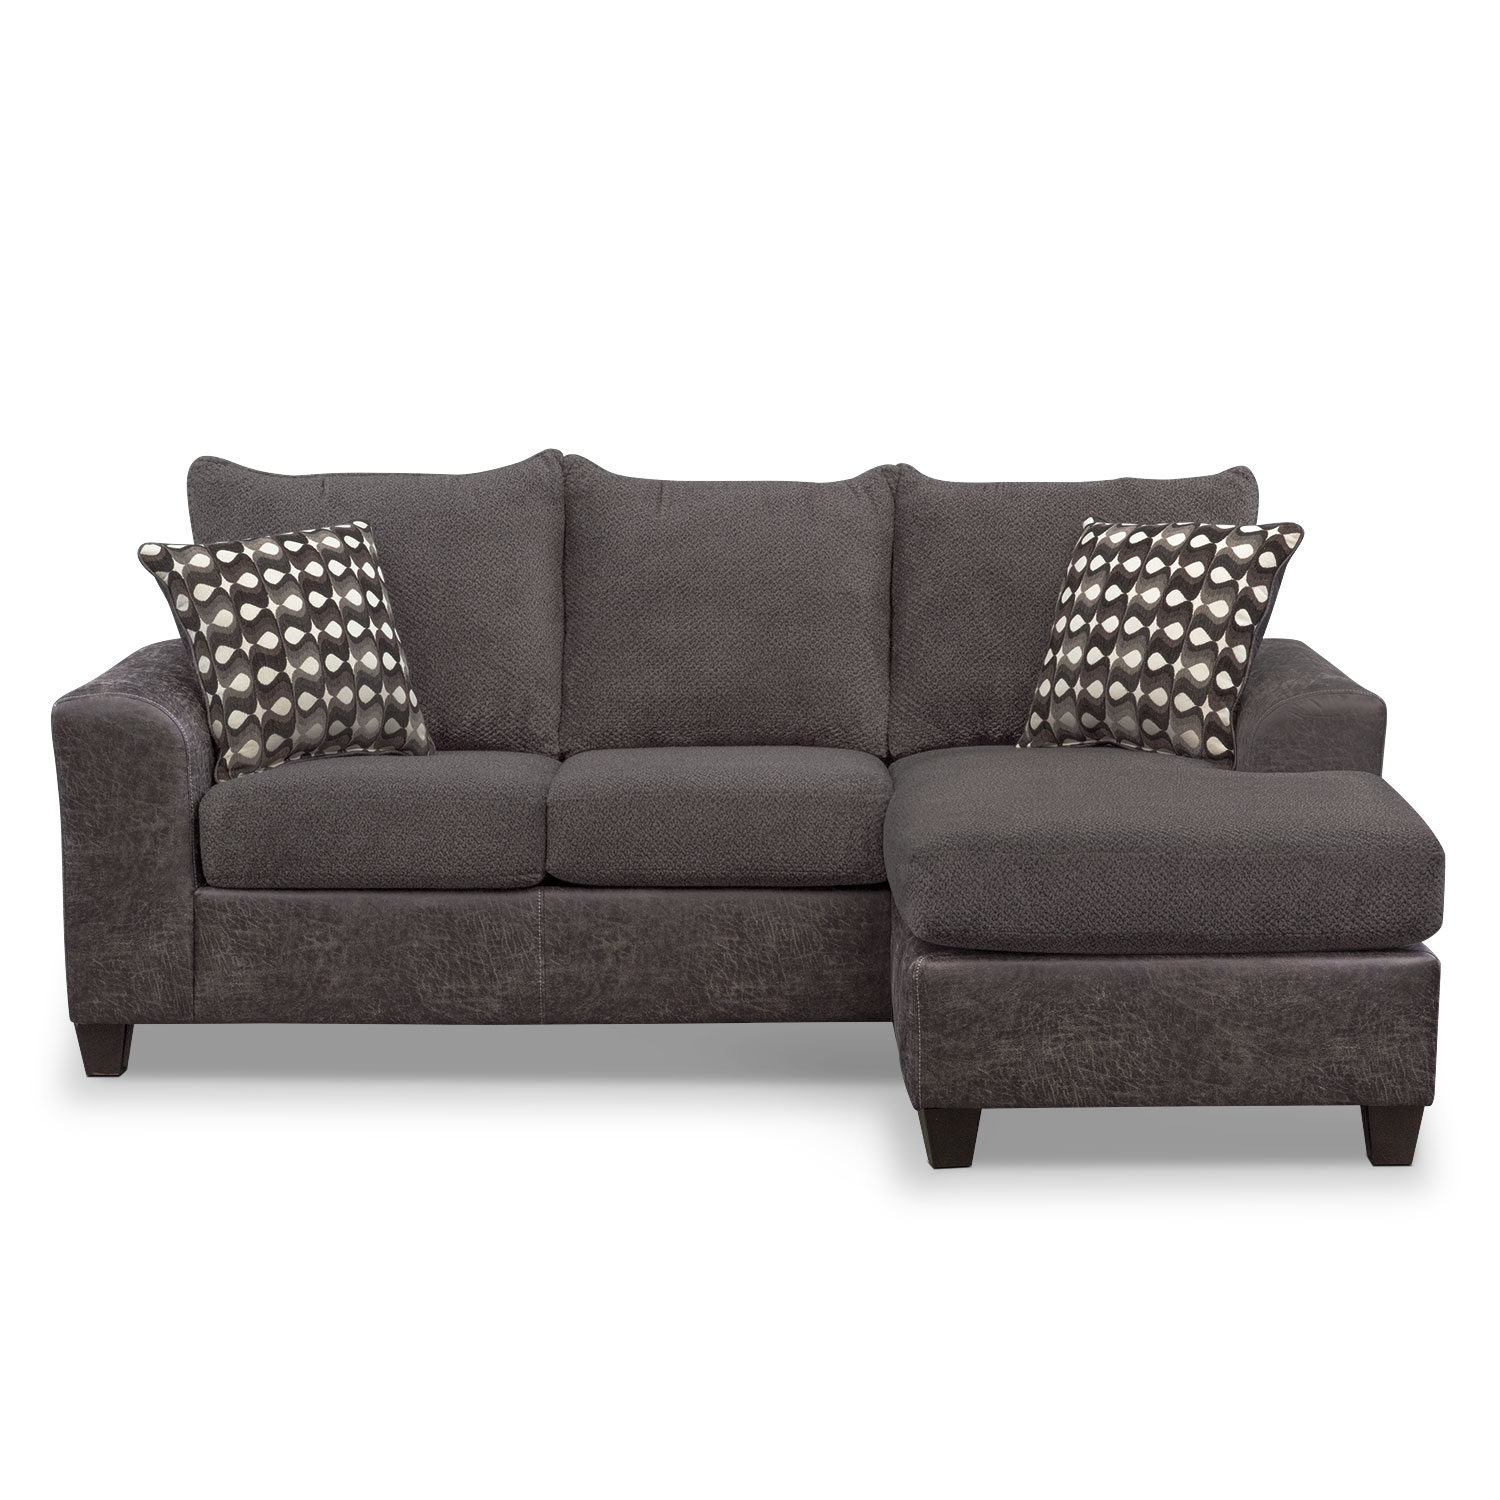 Brando sofa with chaise